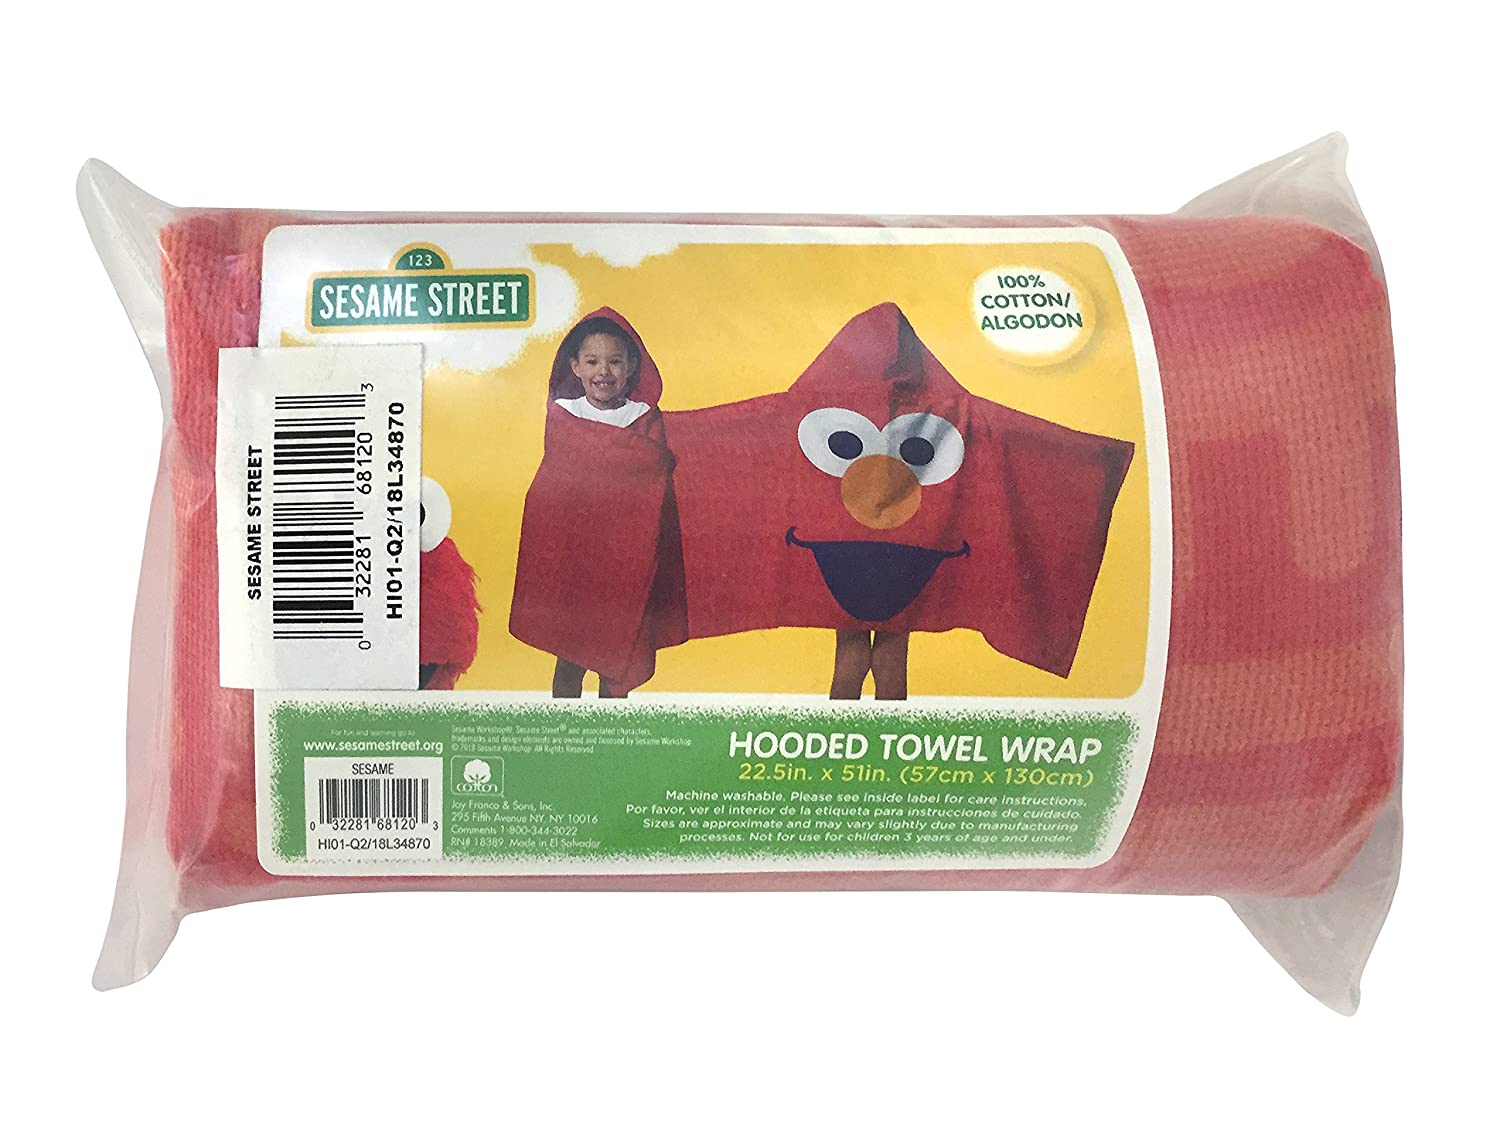 Jay Franco Sesame Street Super Soft & Absorbent Kids Hooded Bath/Pool/Beach  Towel, Featuring Elmo - Fade Resistant Cotton Terry Towel, 22 5